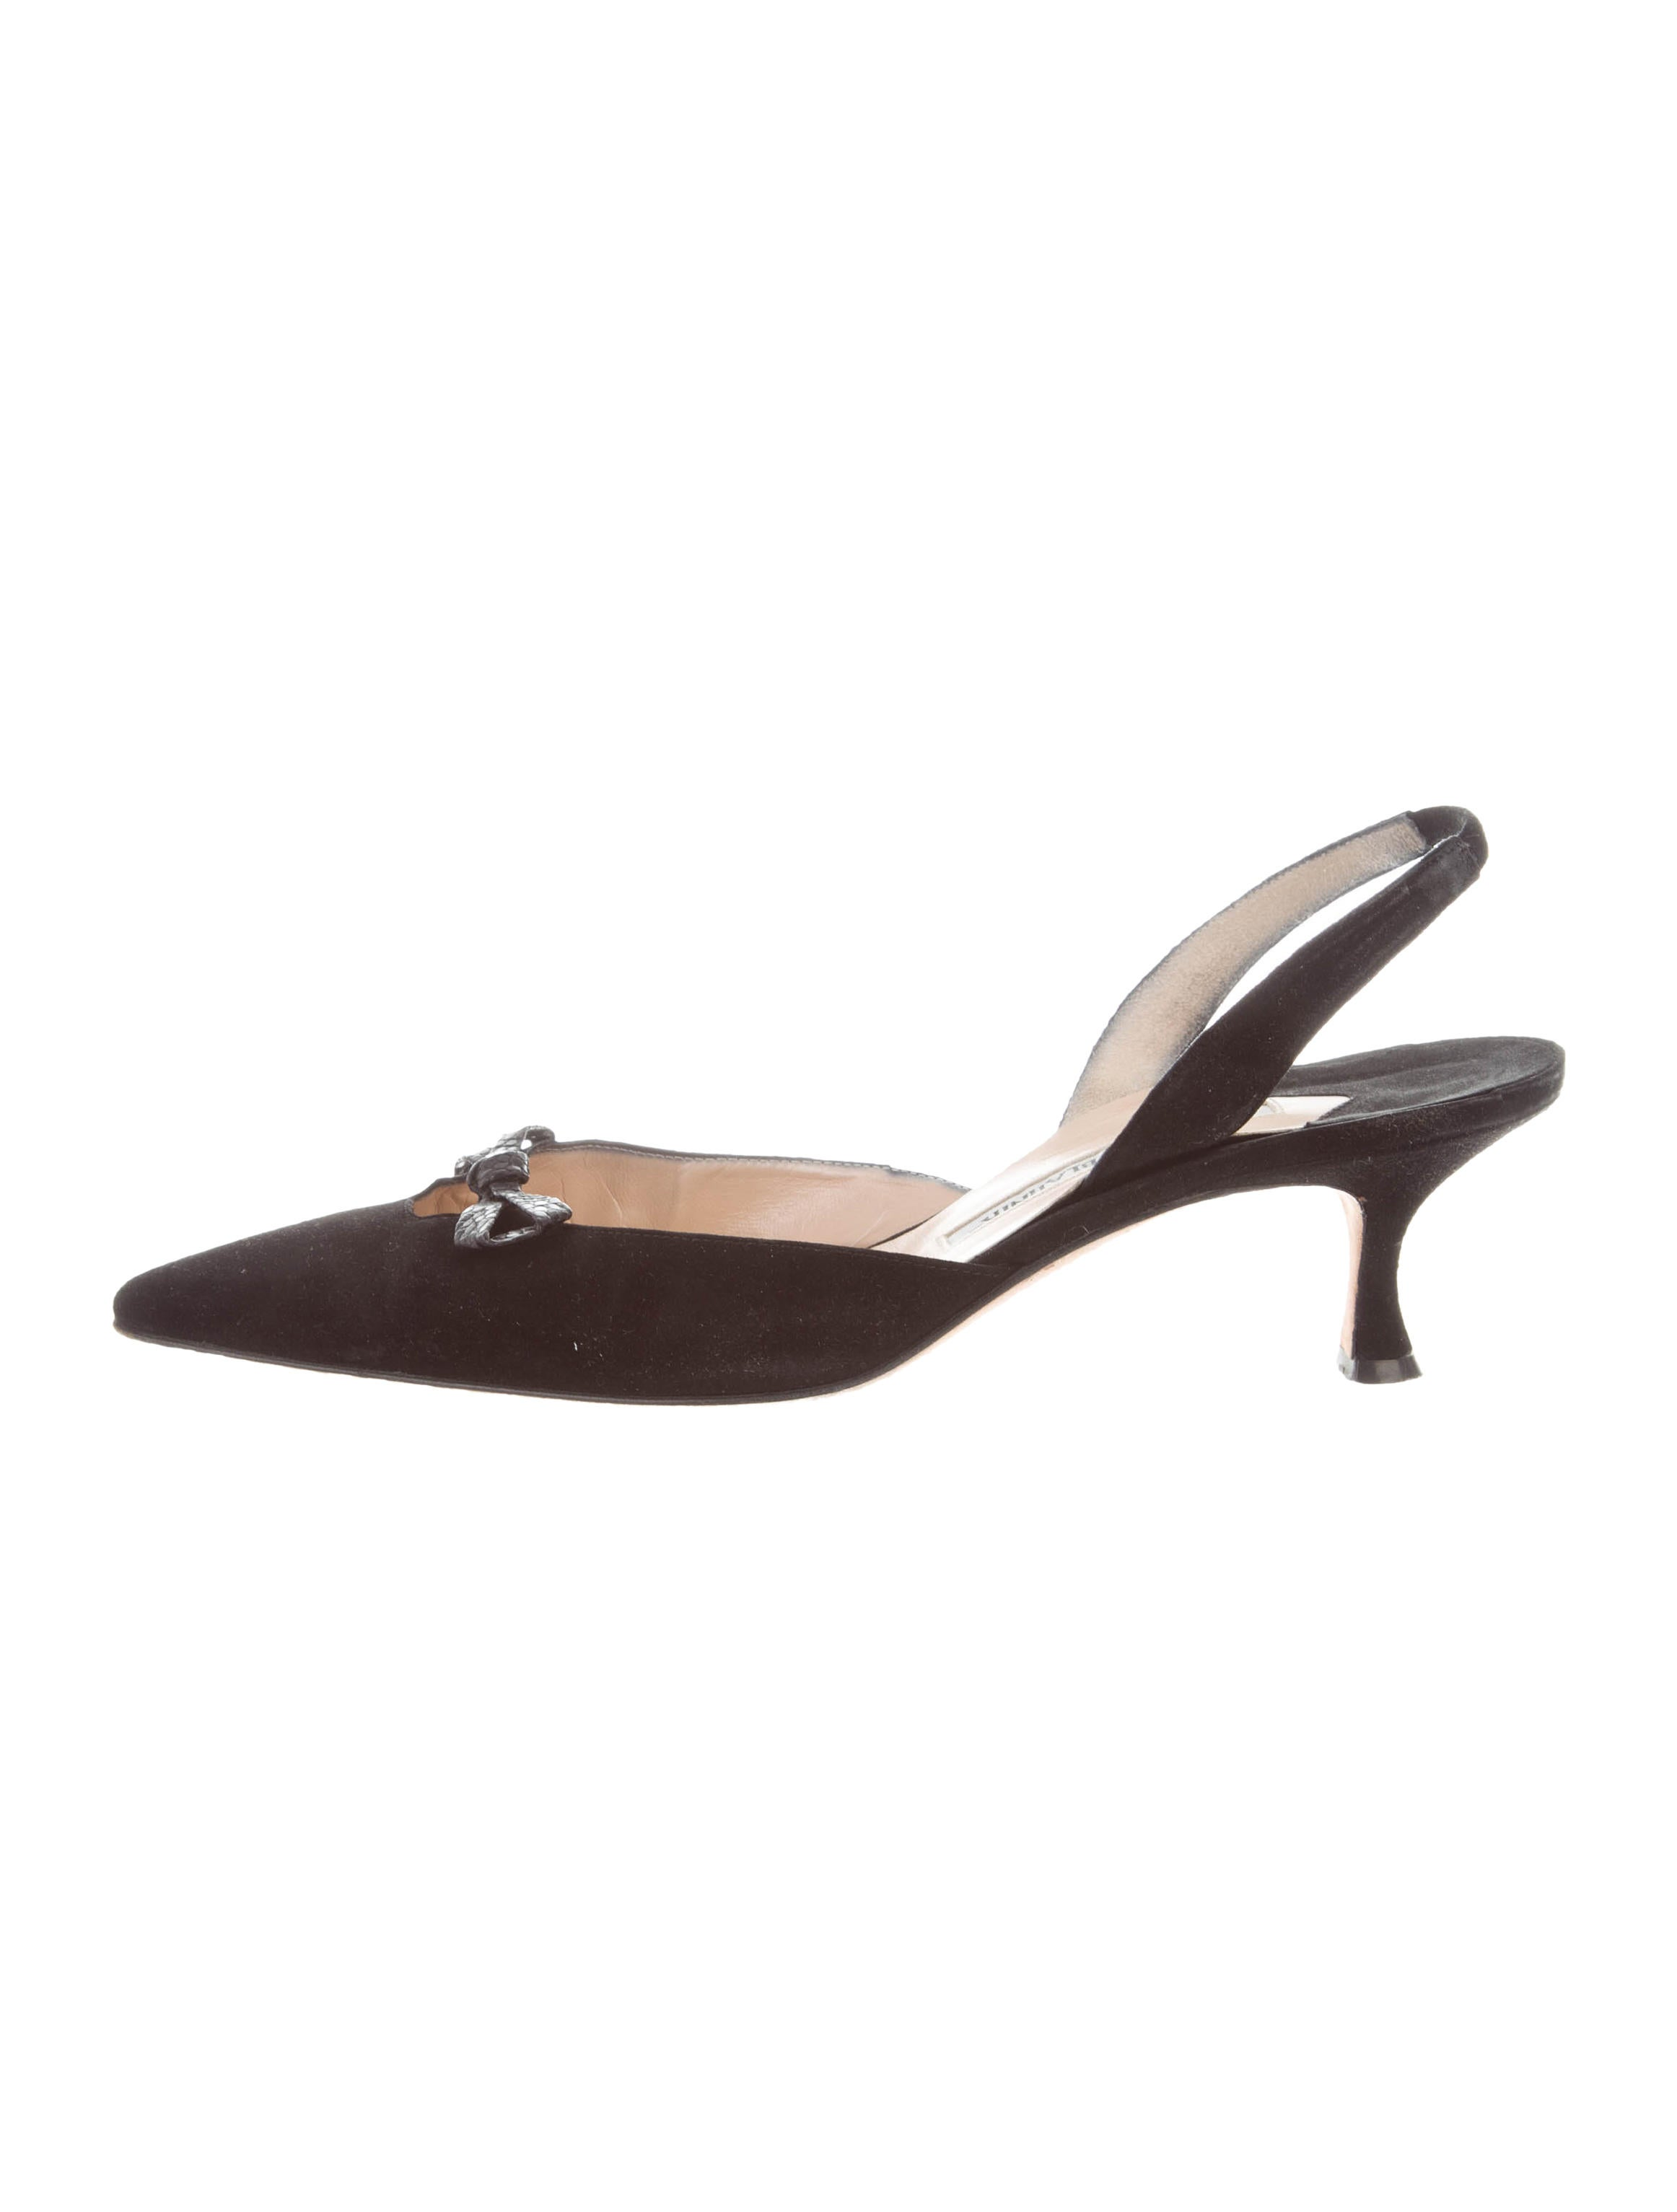 Manolo Blahnik Lizard-Trimmed Pointed-Toe Pumps cost for sale eastbay cheap online real online buy cheap outlet locations shop for sale AXnwN8GkvE